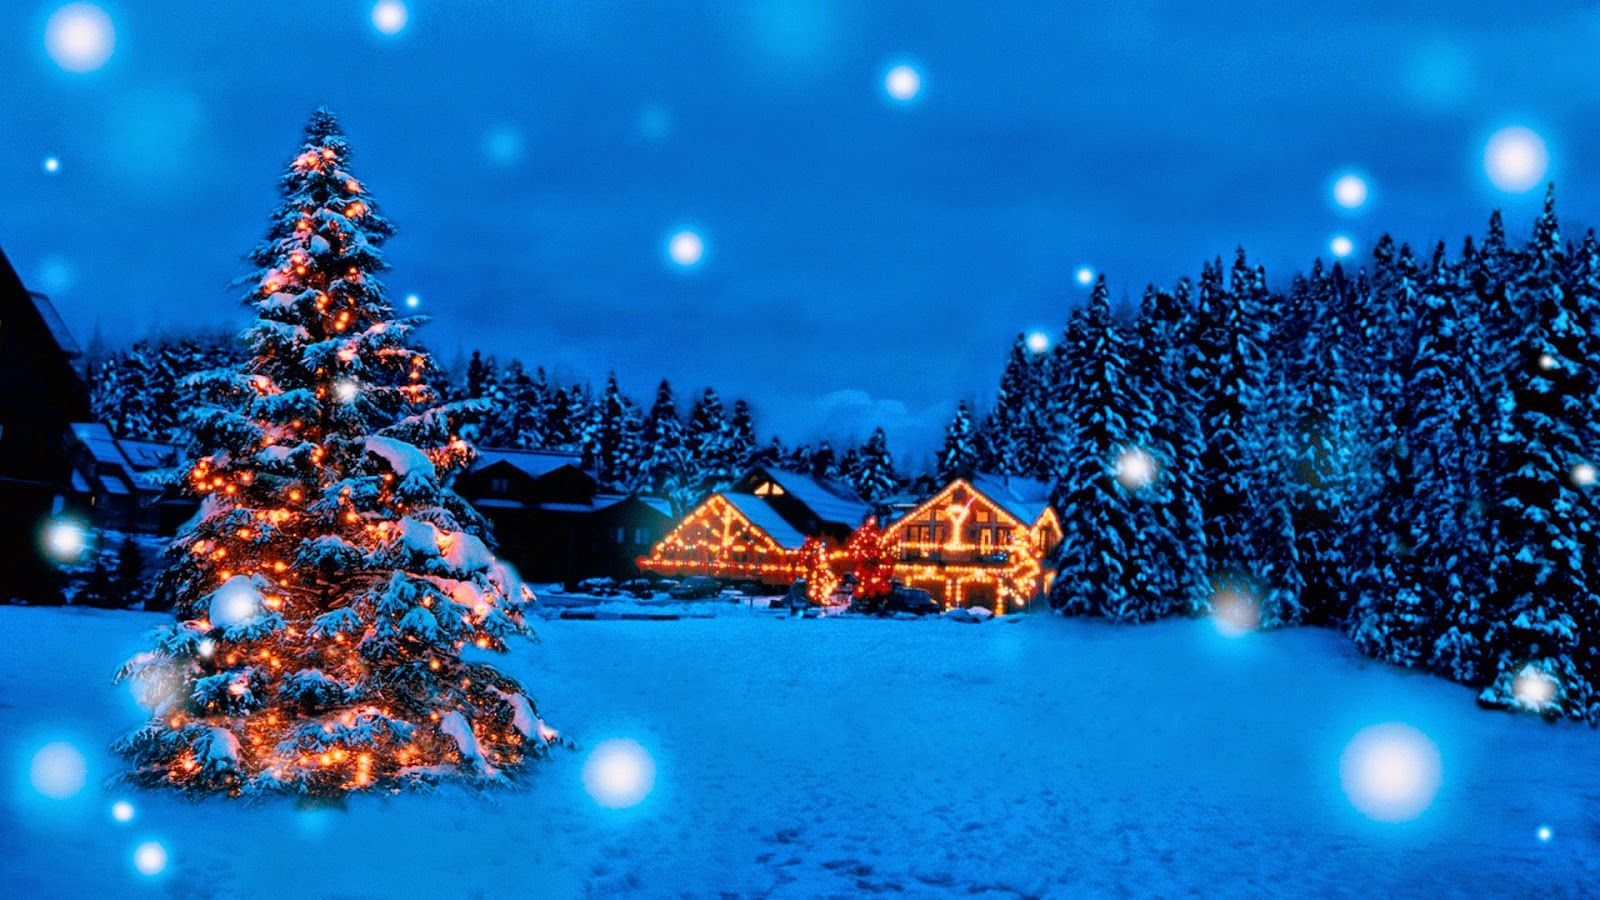 9452 christmas computer wallpaper backgrounds 1600x900